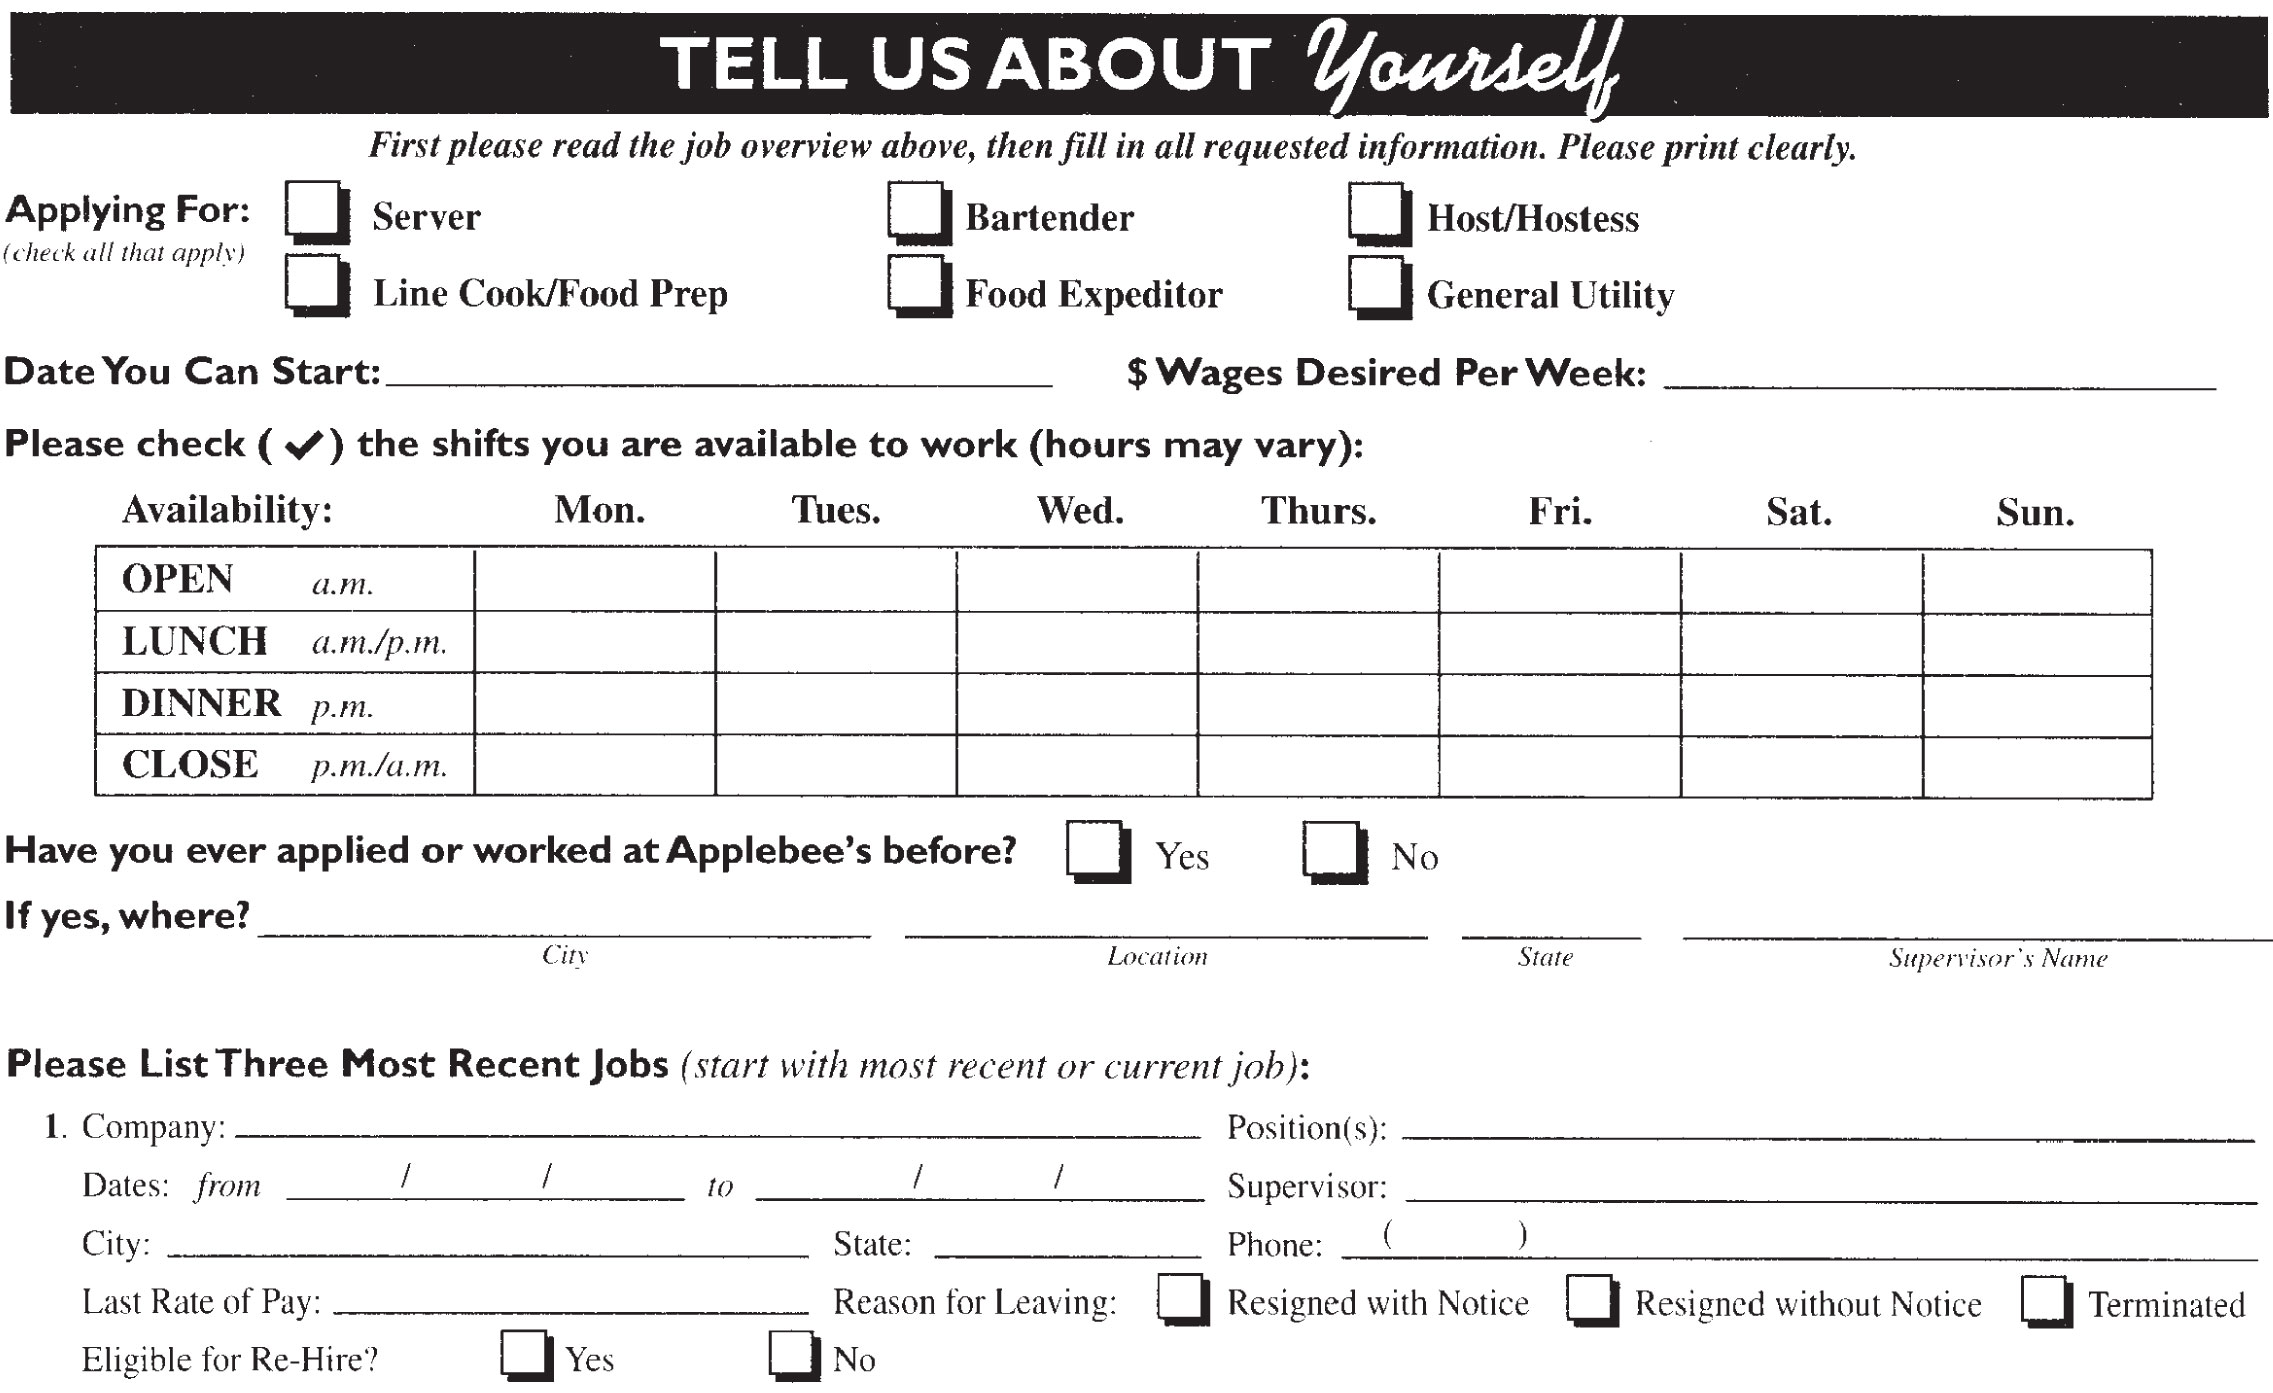 Download job application here